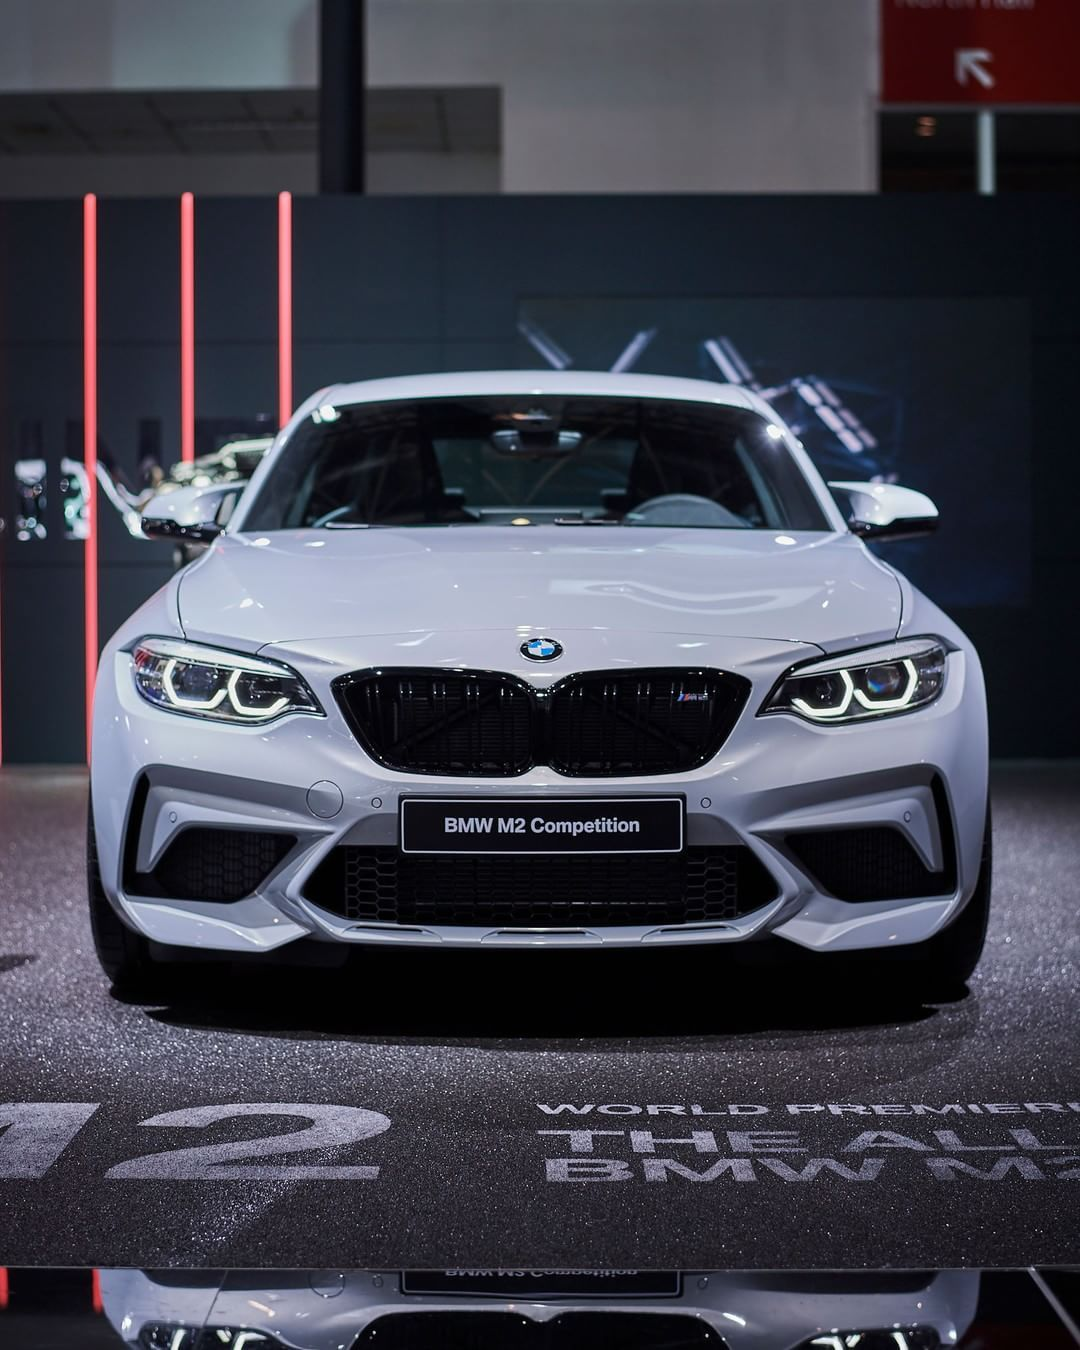 Sets A New Pace In The Compact High Performance Sports Car Segment